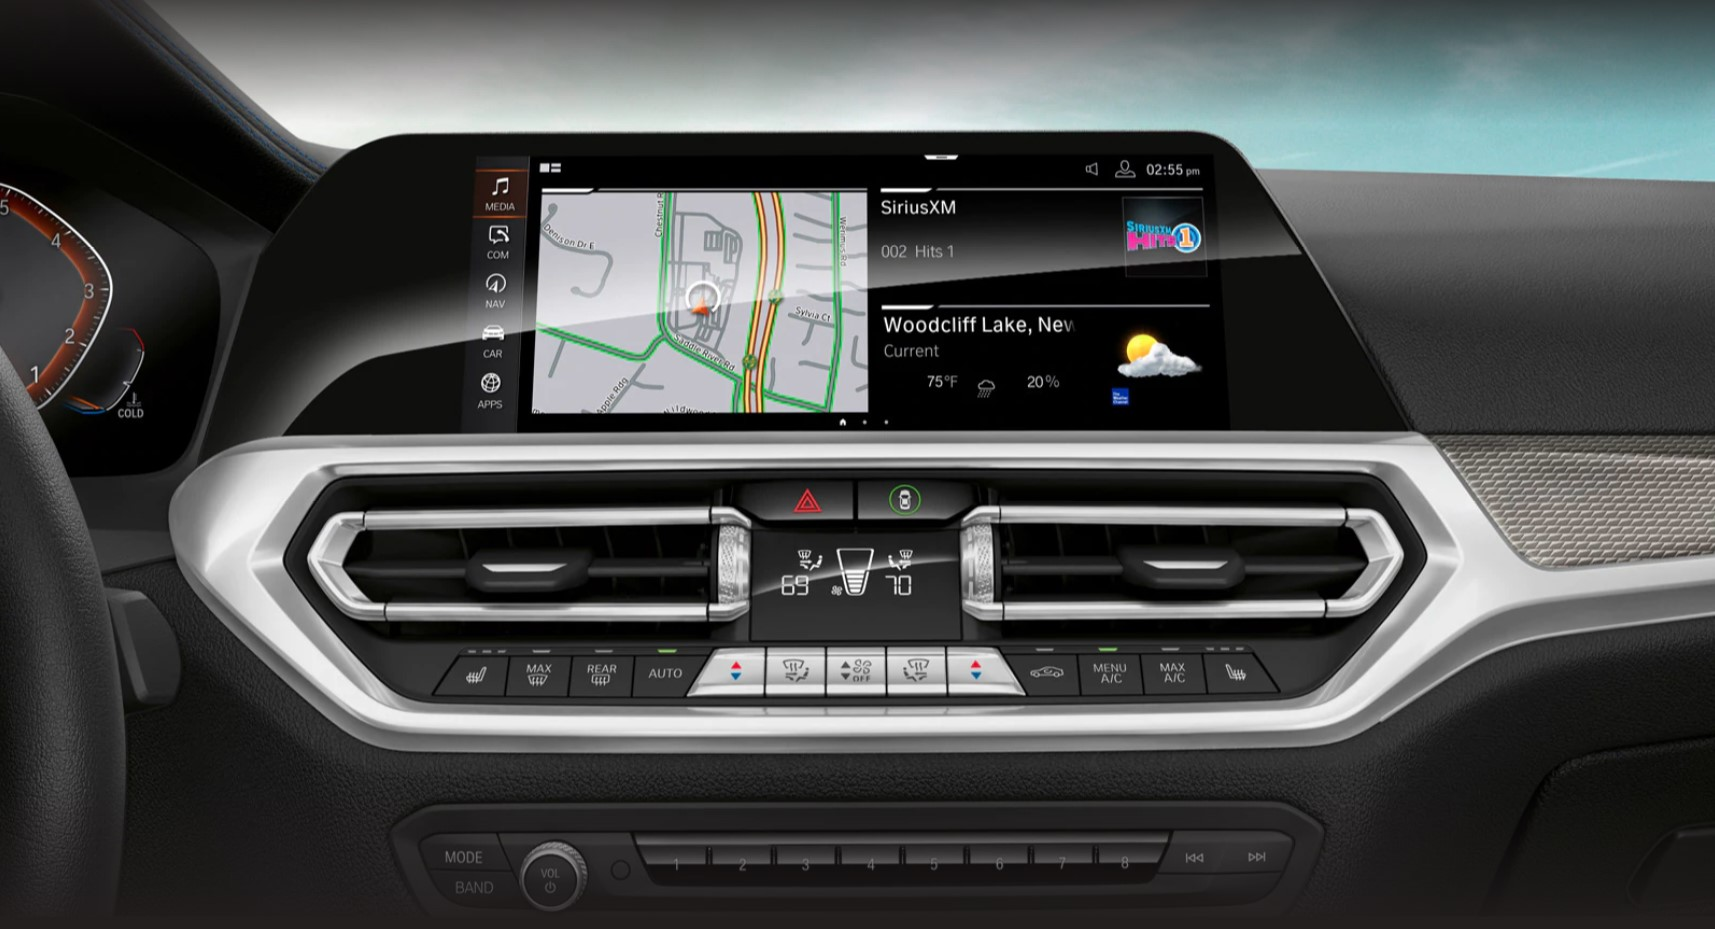 2020 3 Series Infotainment System